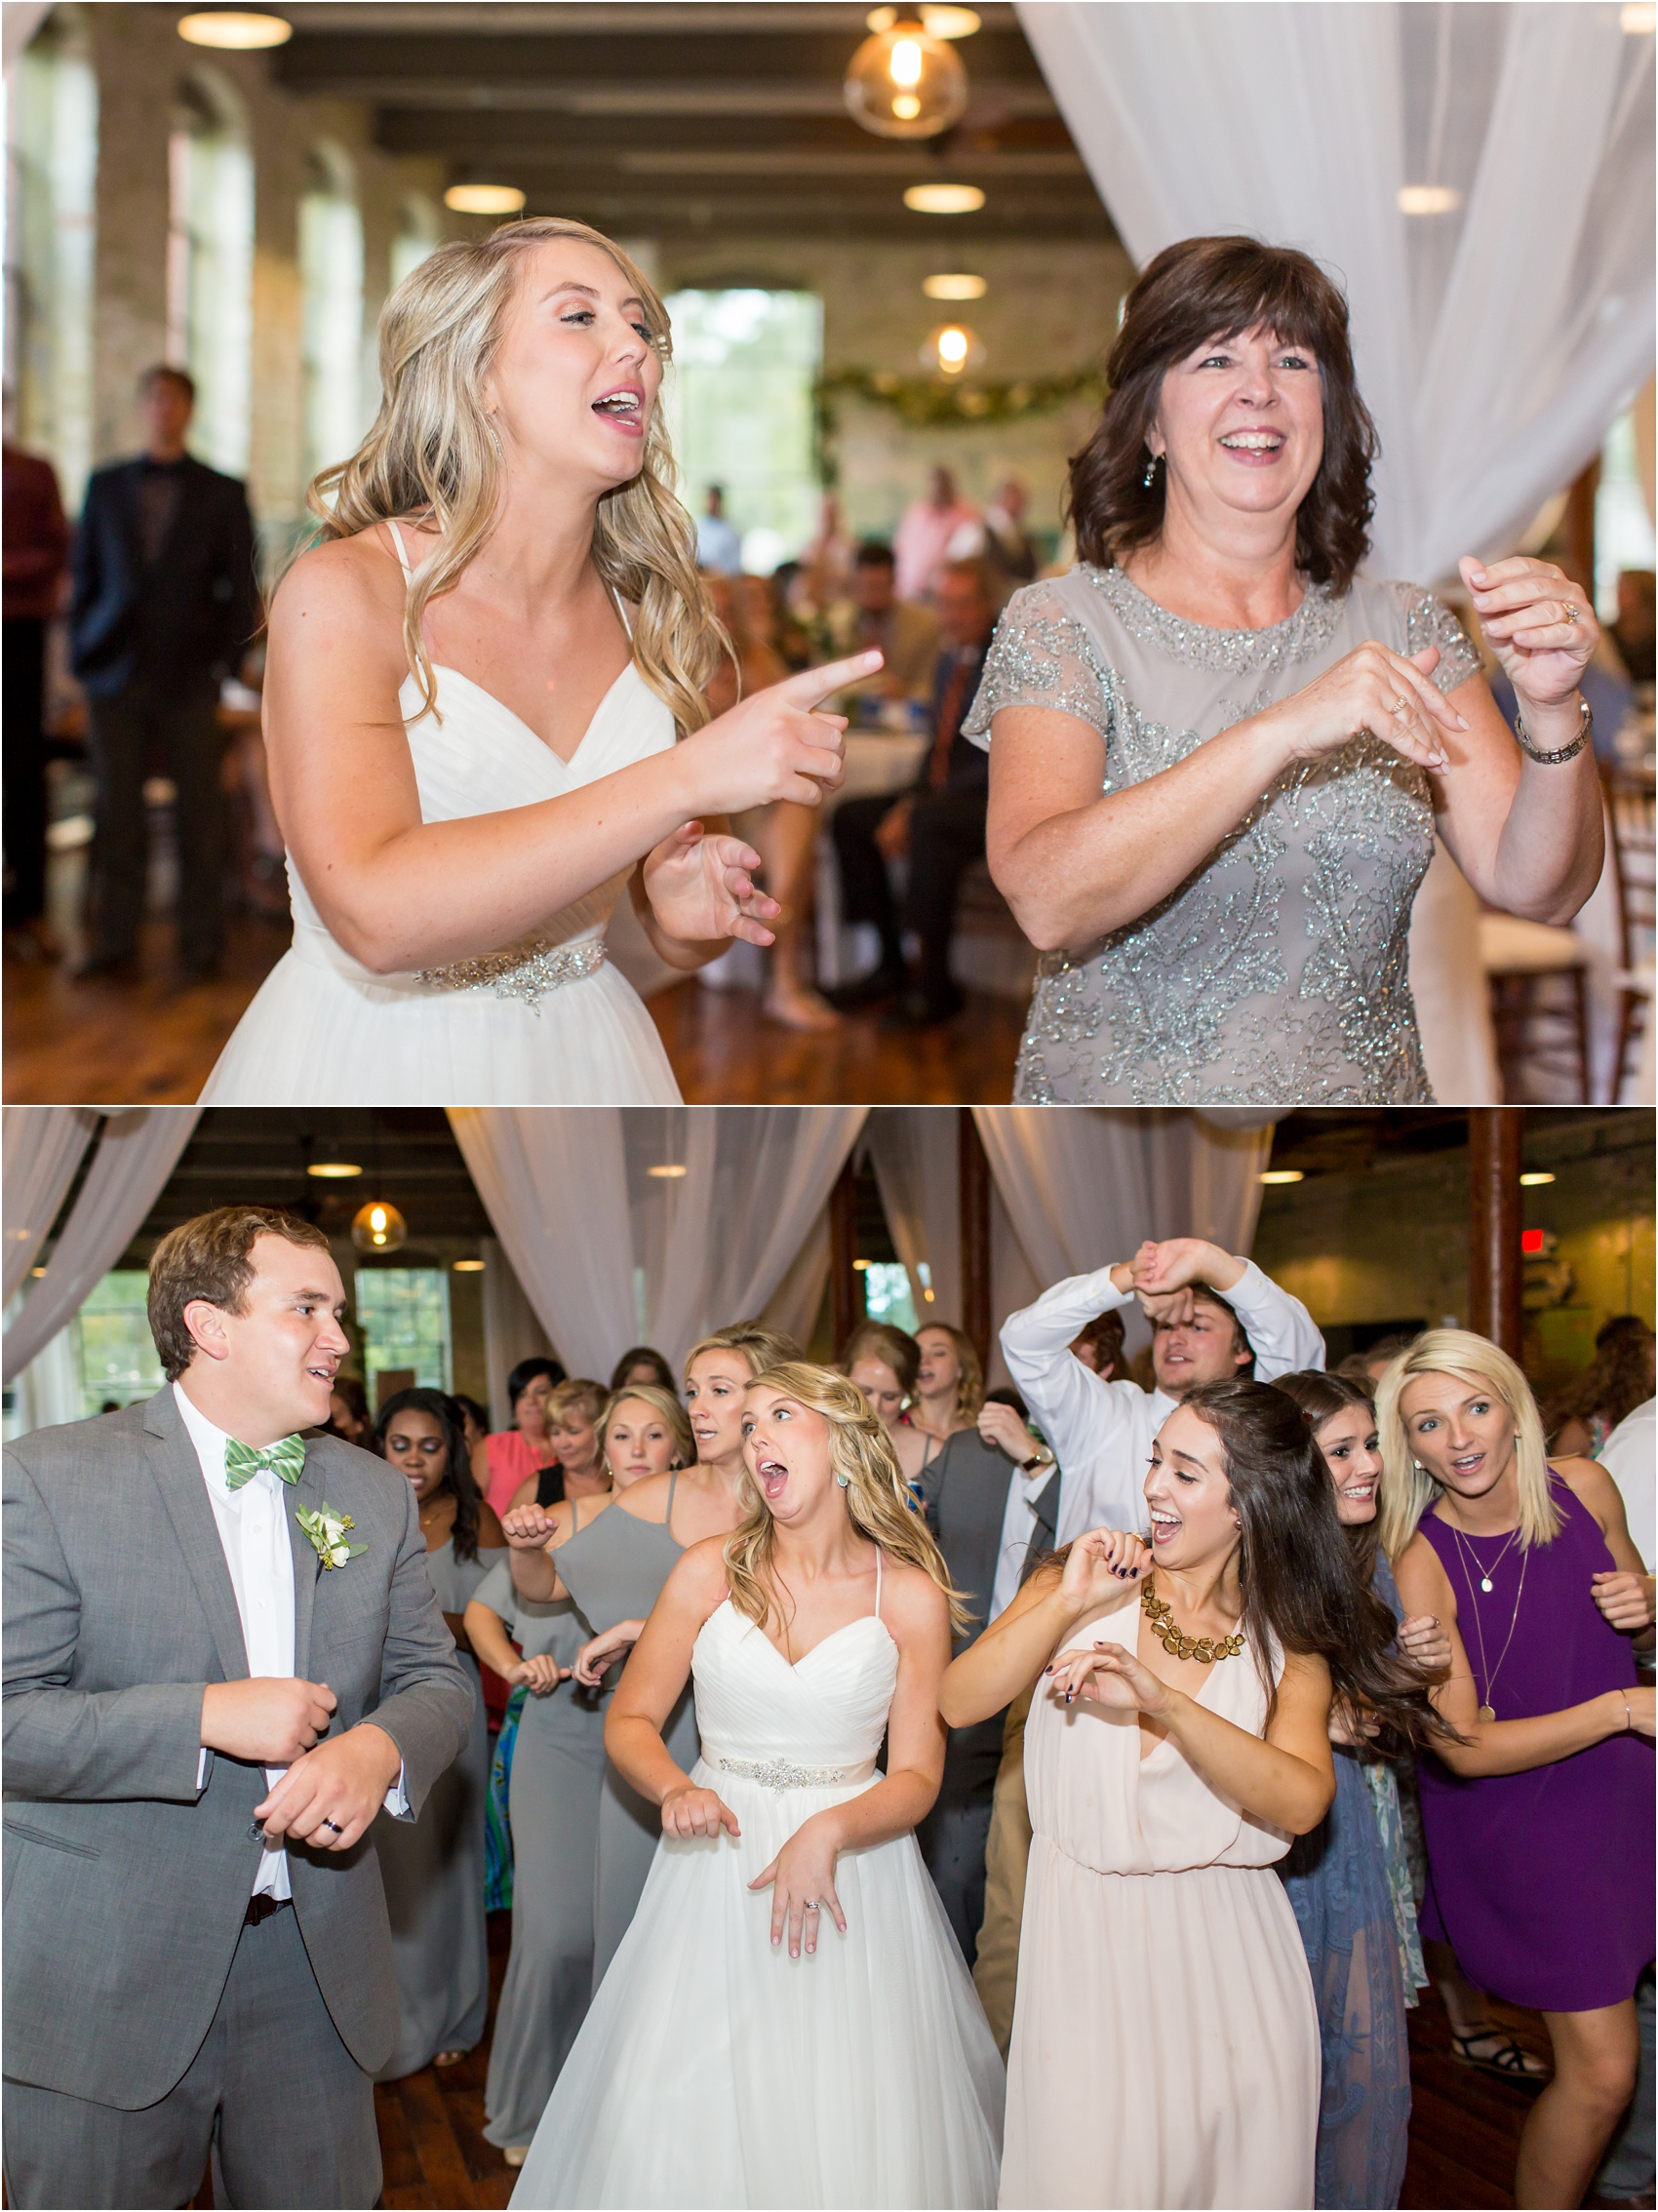 Savannah Eve Photography- Gunter Wedding- Blog-76.jpg